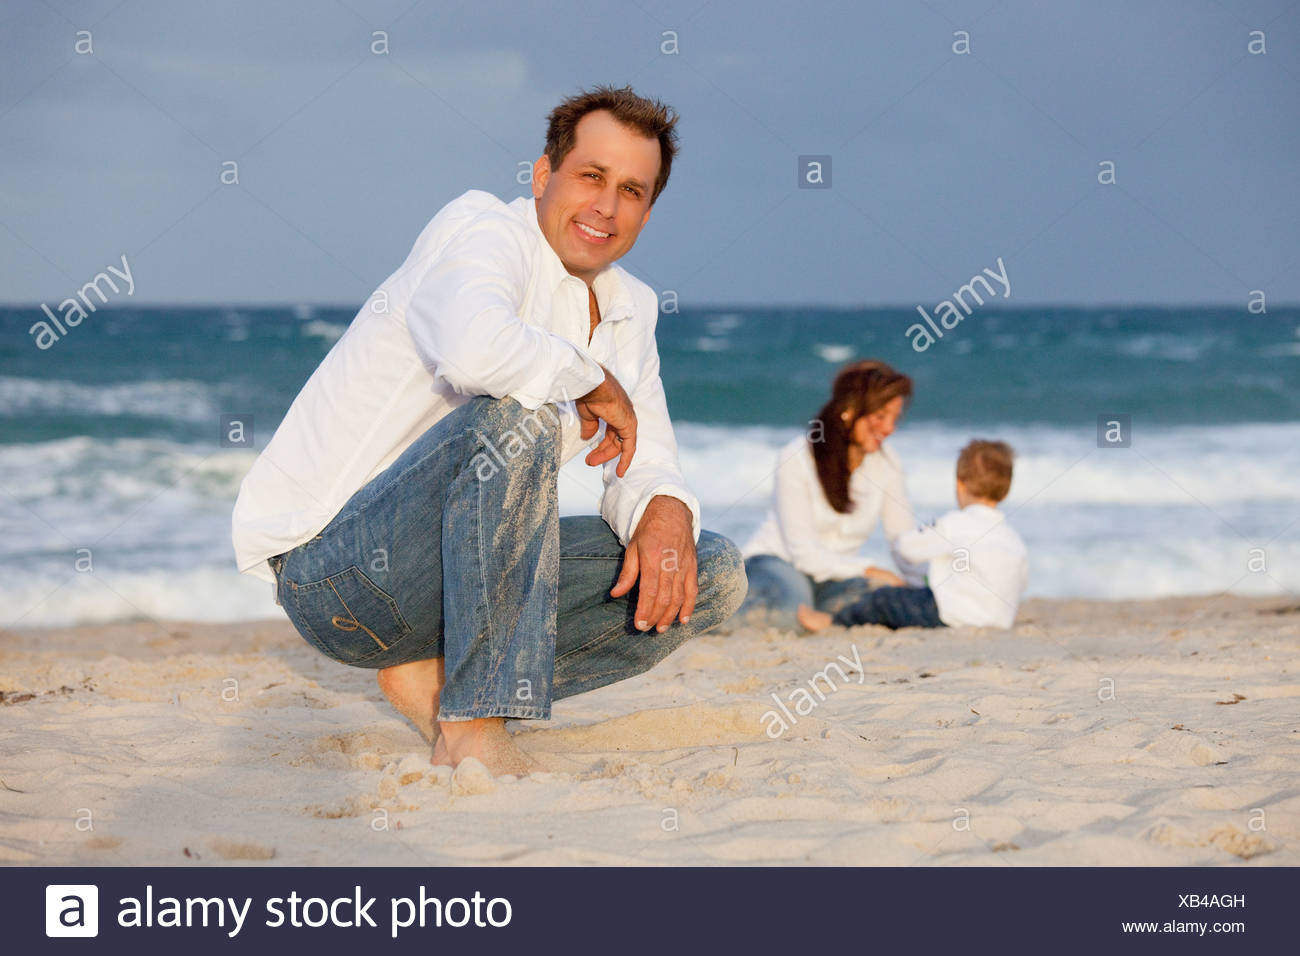 Fort Lauderdale, Florida, United States Of America; A Man On The Beach With His Family - Stock Image